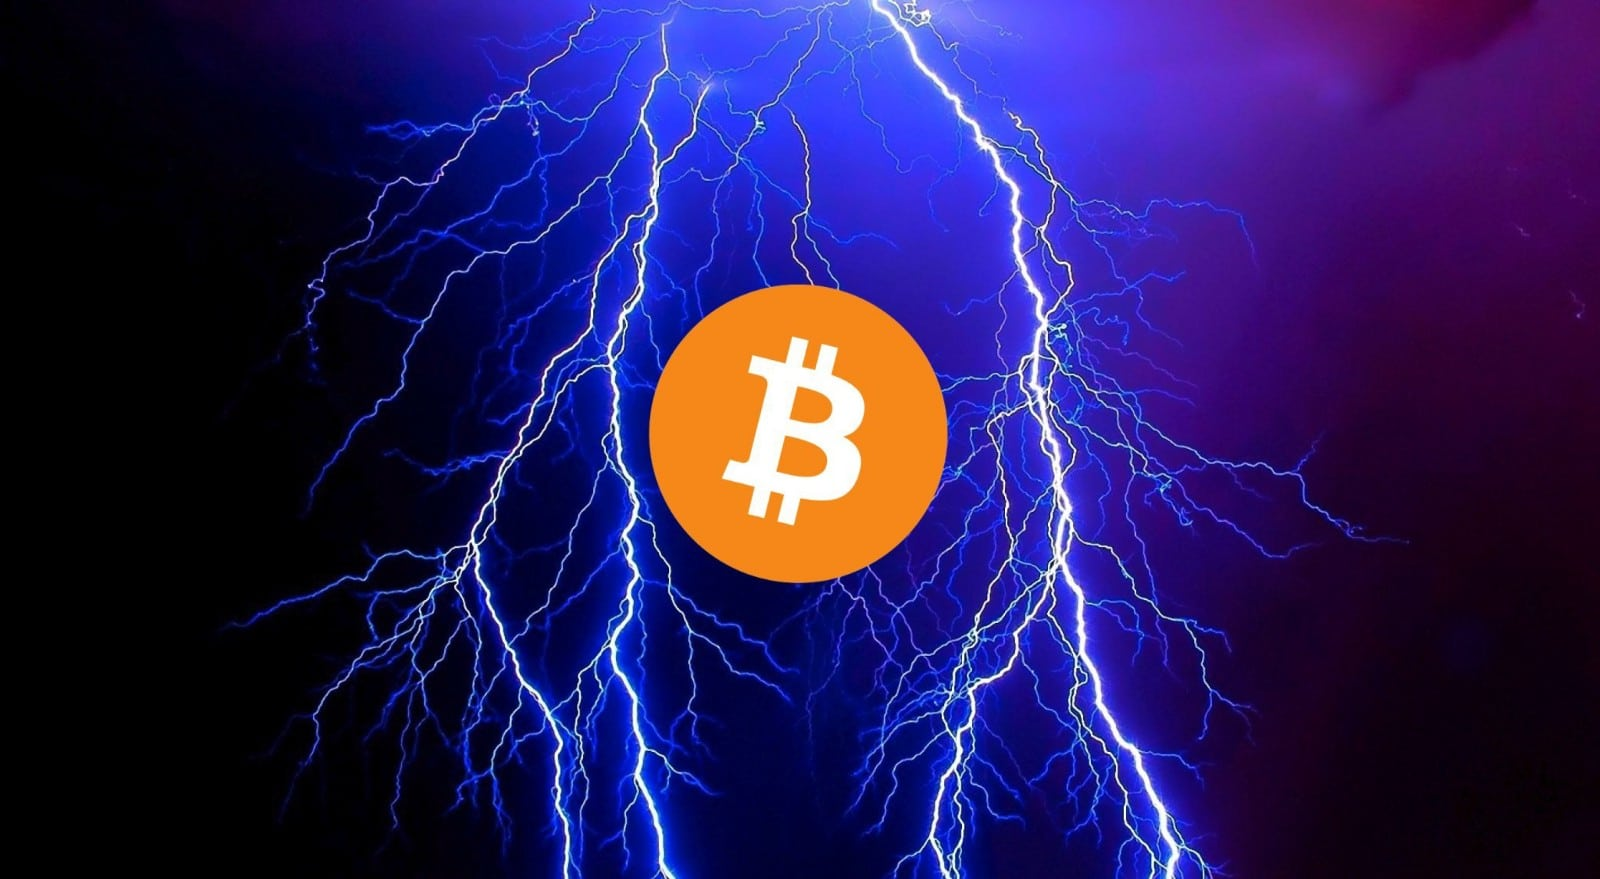 btc lightning network - Bitcoin (BTC) Lightning Network Speeds Up Cryptocurrency Business Globally